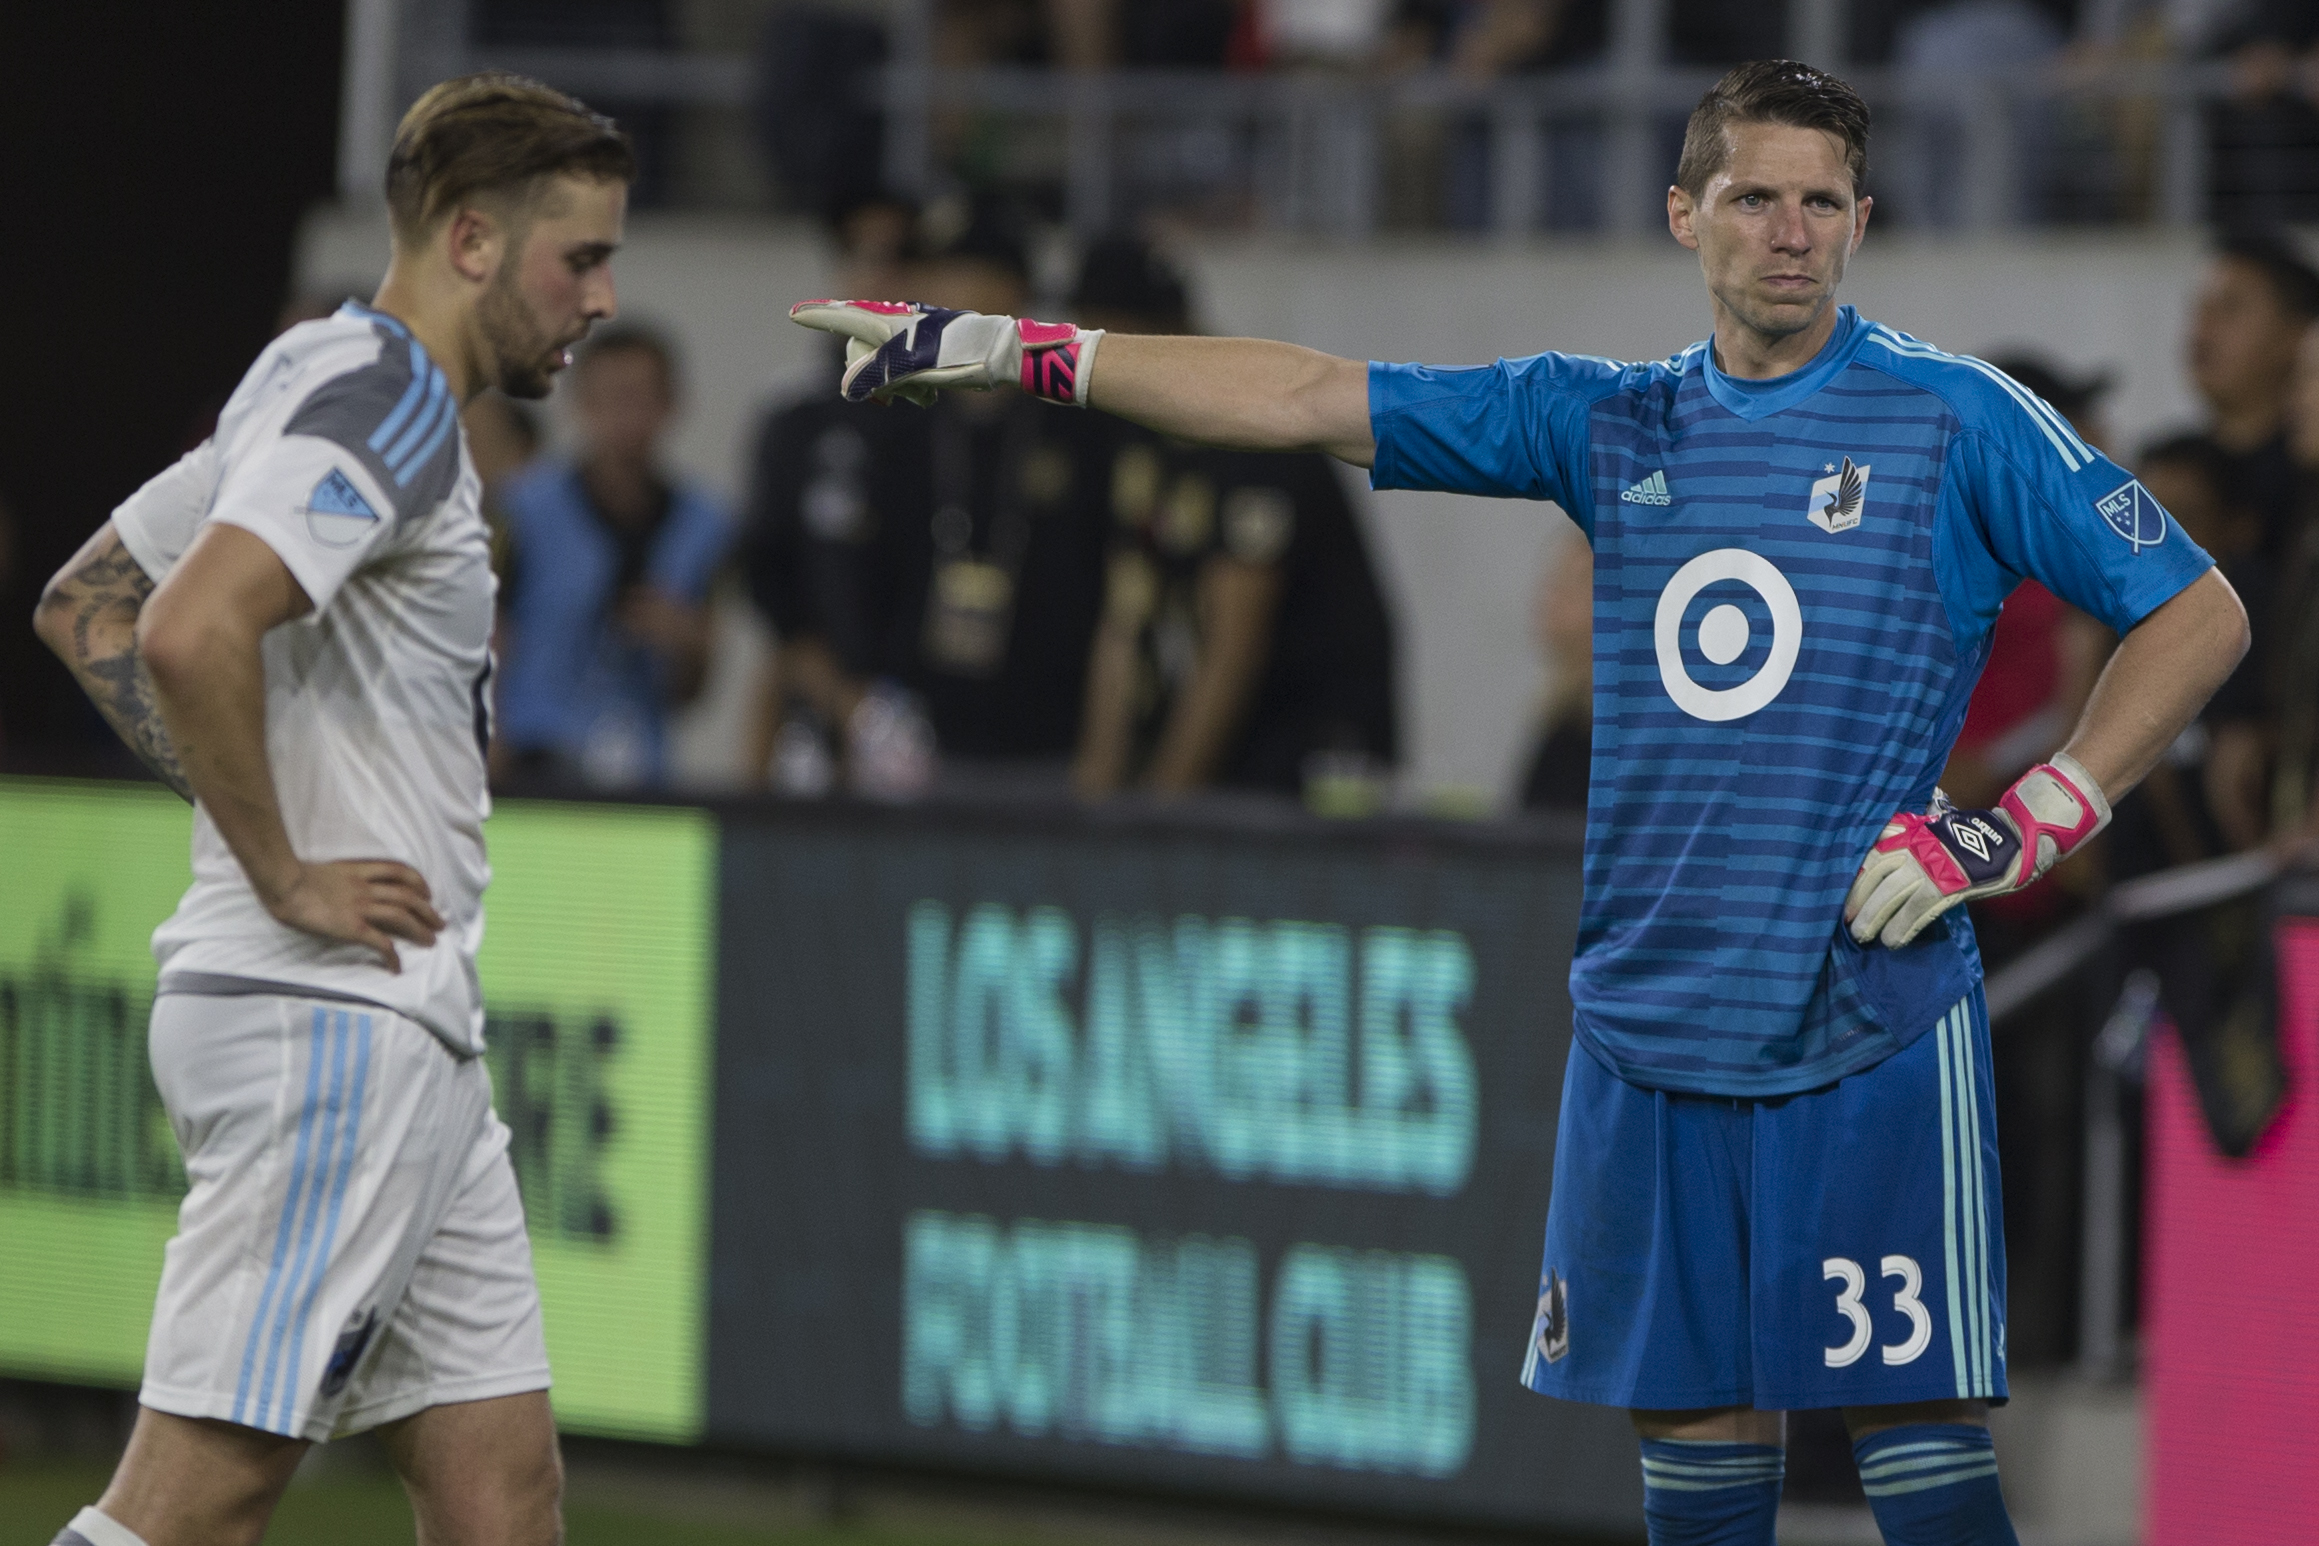 Minnesota United Football Club goalie Booby Shuttleworth (33, right) blames his teammates for a lack of defense during their match against the Los Angeles Football Club  at Banc of California Stadium on May 9, 2018 where the LAFC won 2-0. (Zane Meyer-Thornton/Corsair Photo)